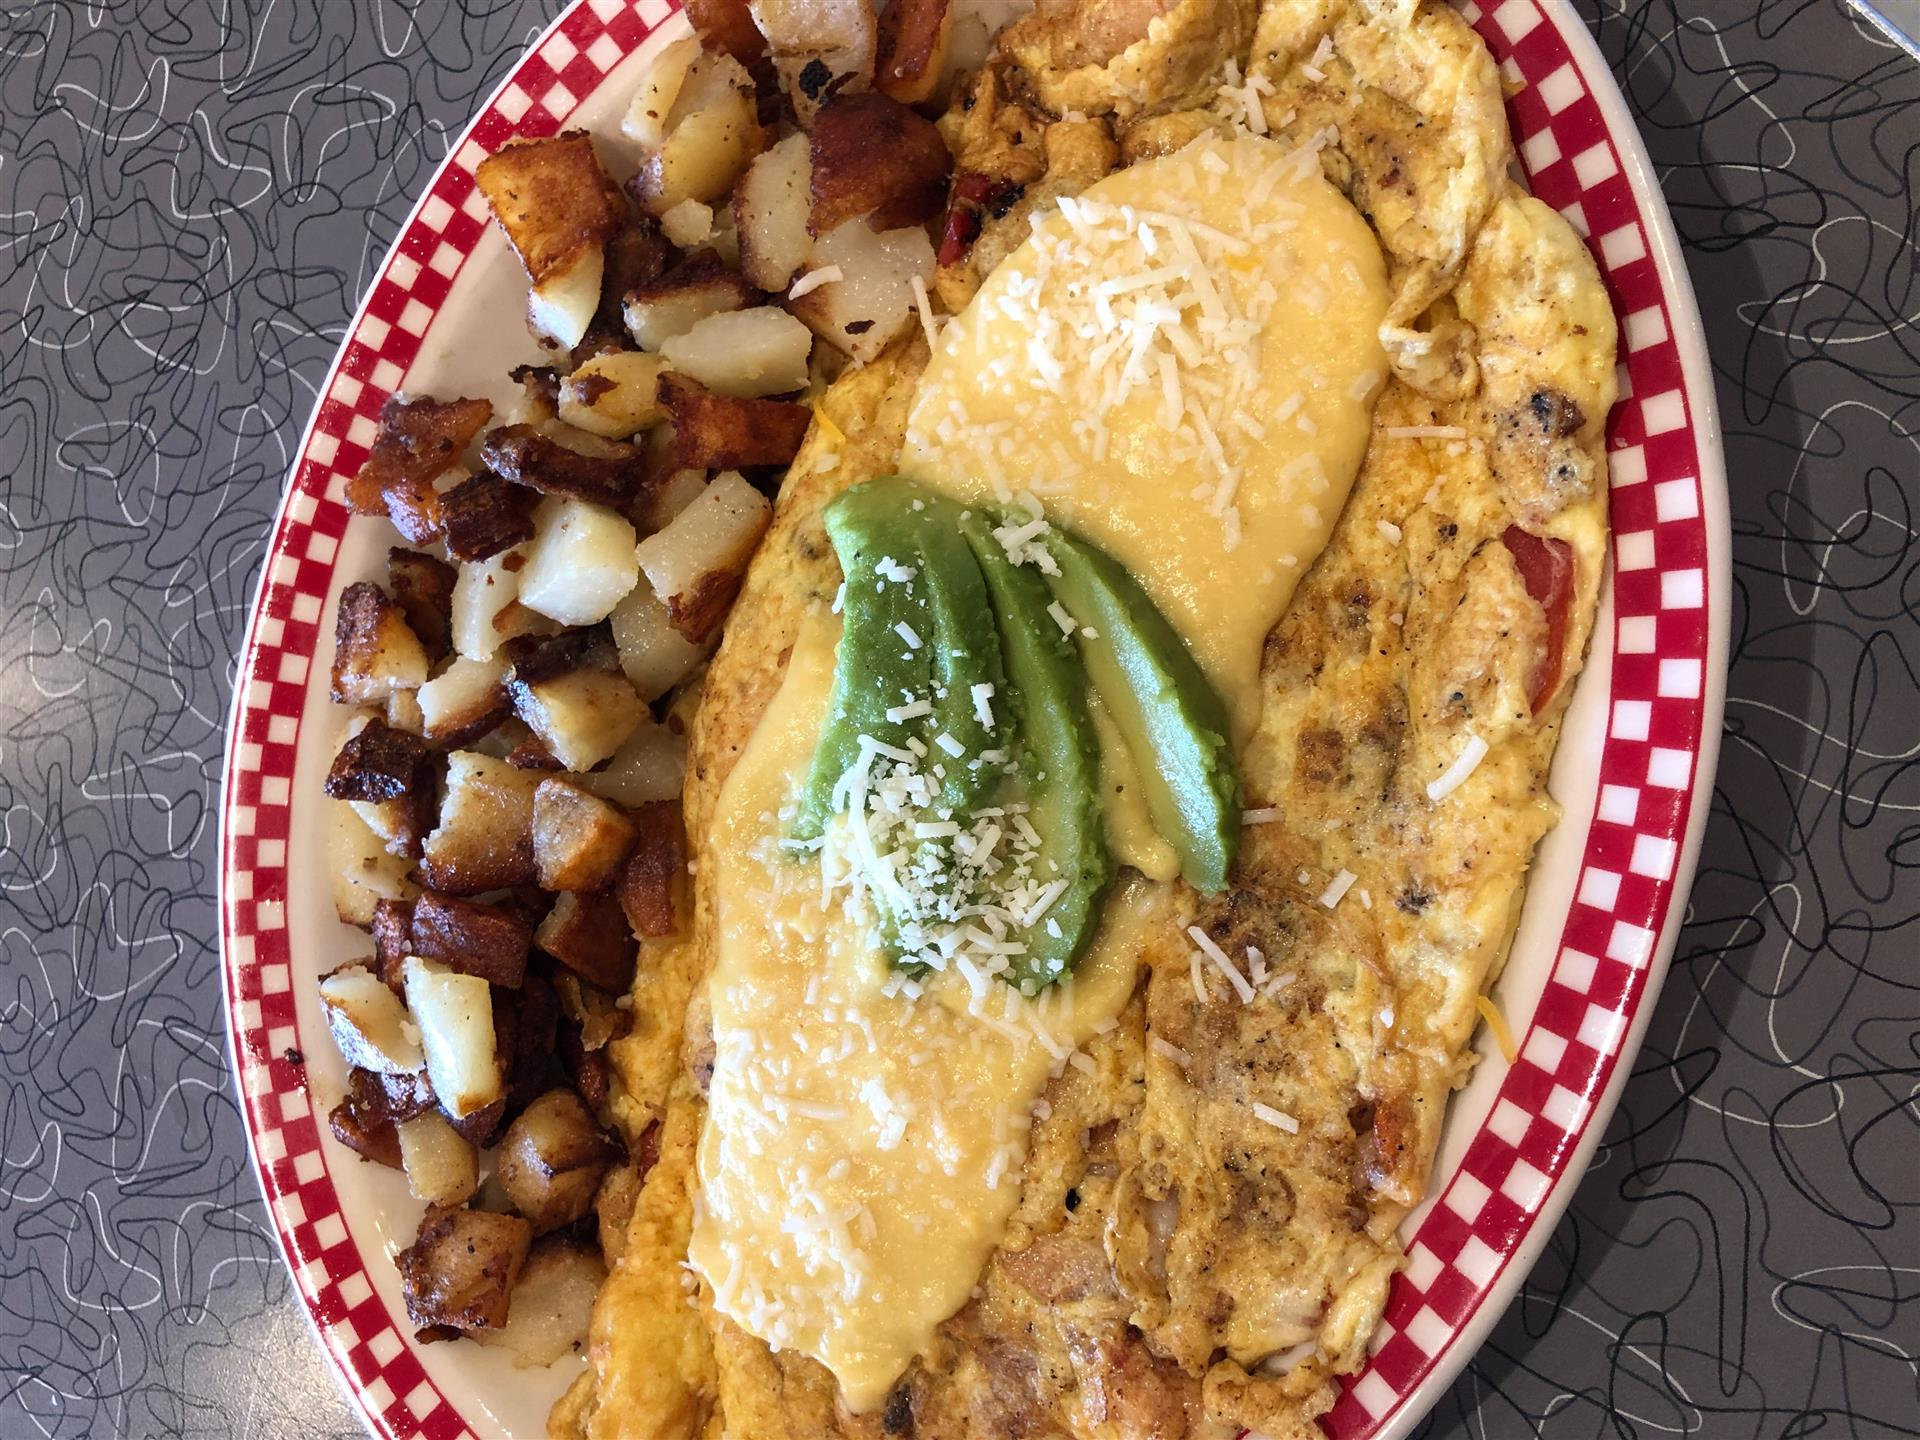 seafood omelet with a side of home fries